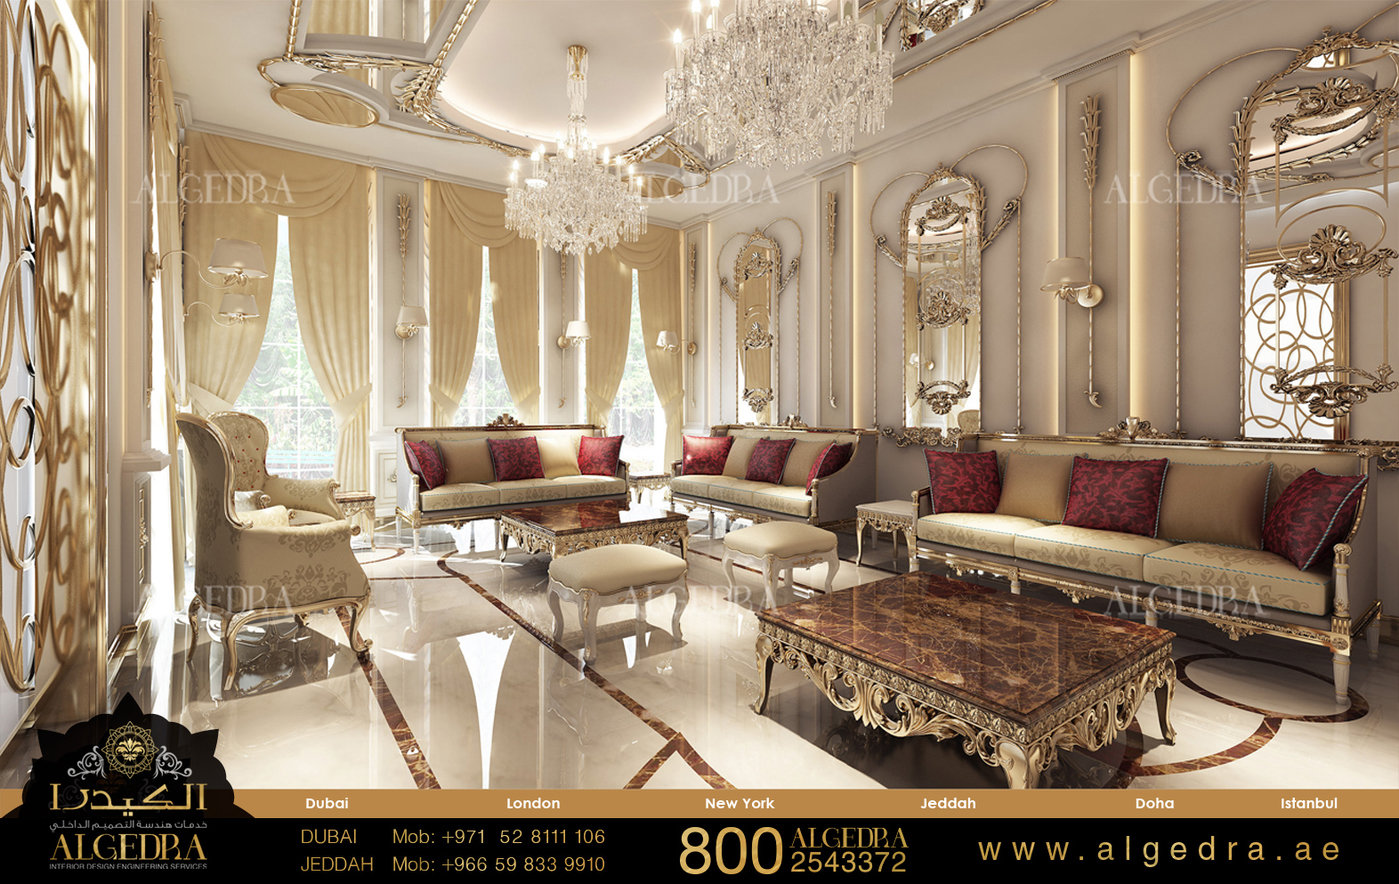 3c1eecc02 ALGEDRA Interior Design. Share your thoughts about this Moroccan Majlis  Style